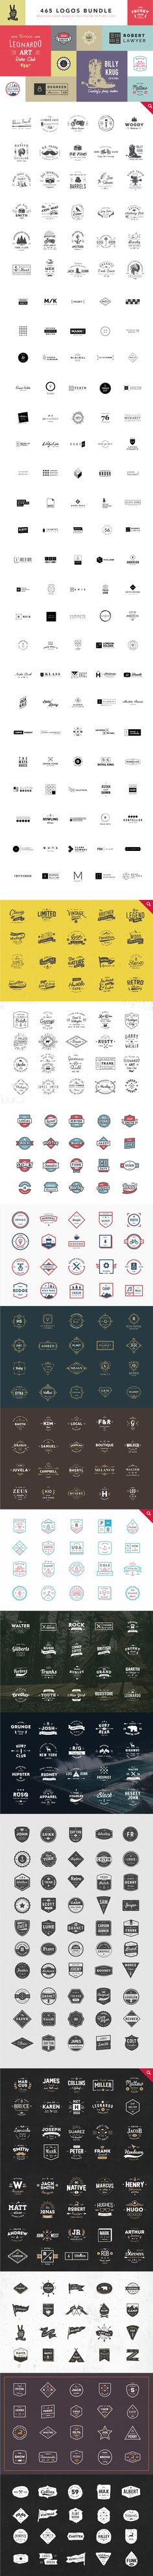 465 Logos Bundle by vuuuds https://creativemarket.com/vuuuds/287274-465-Logos-Bundle-90-off